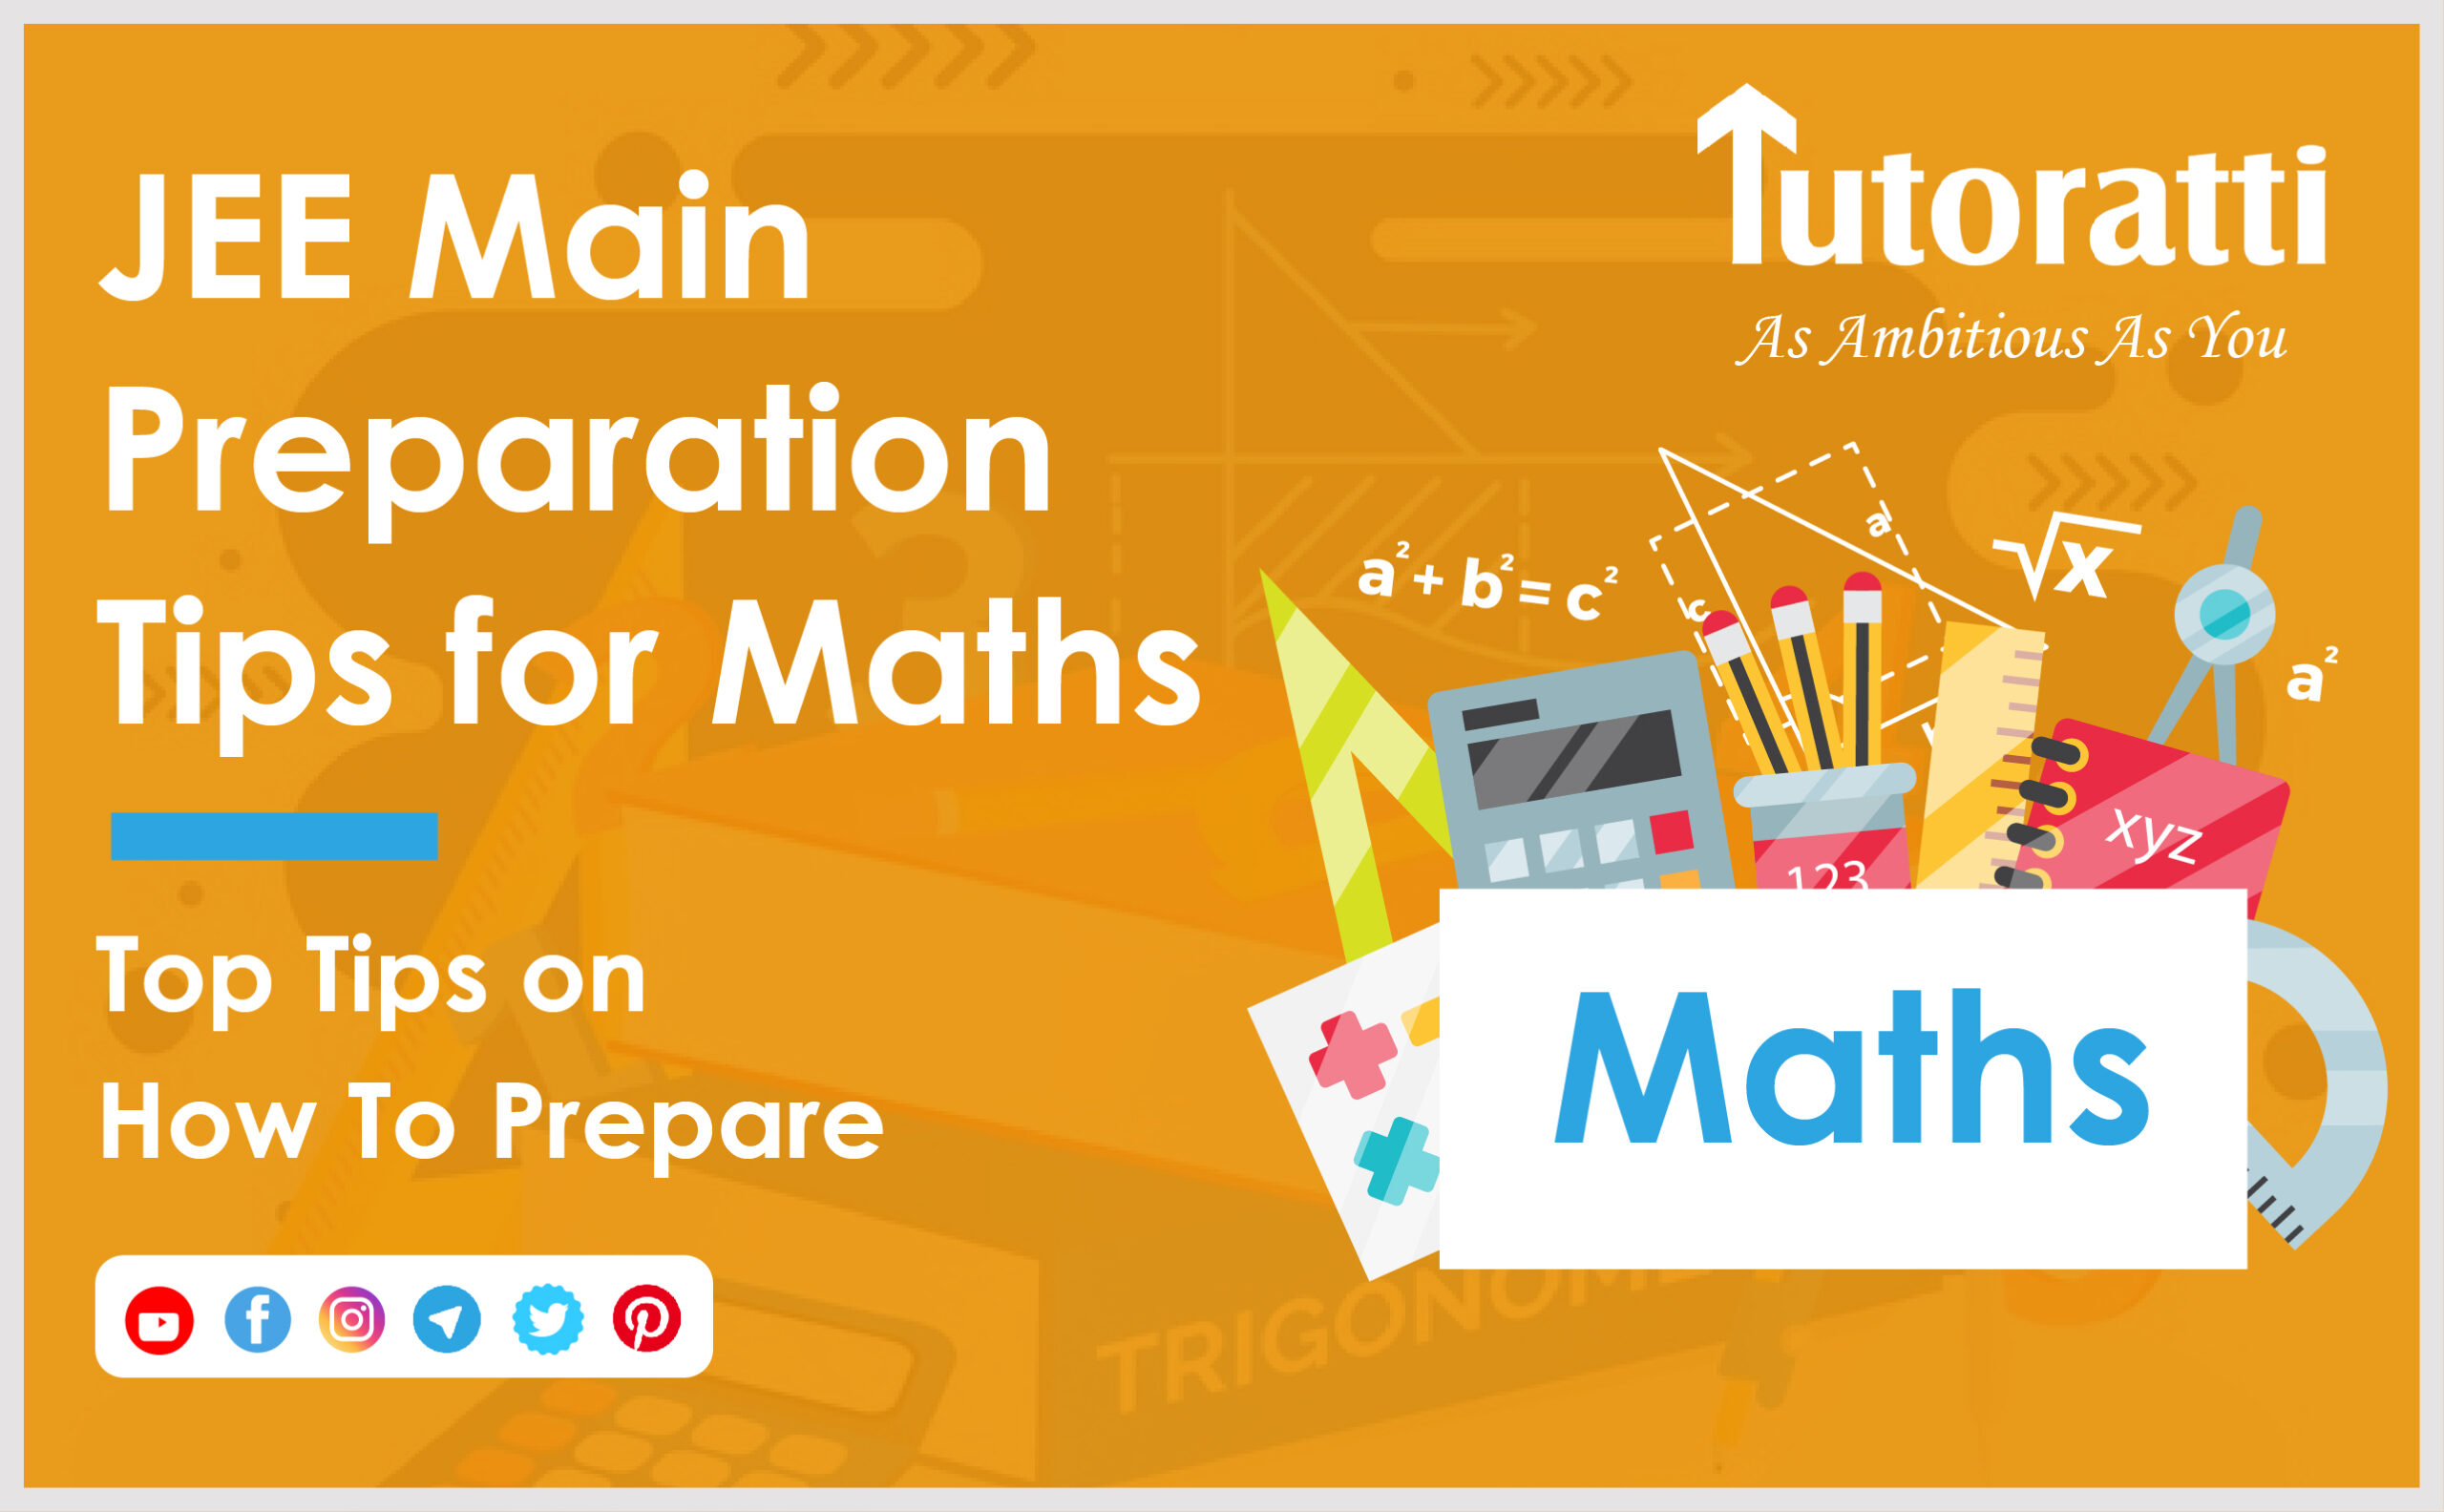 JEE Main Preparation Tips for Maths: Top Tips on How To Prepare